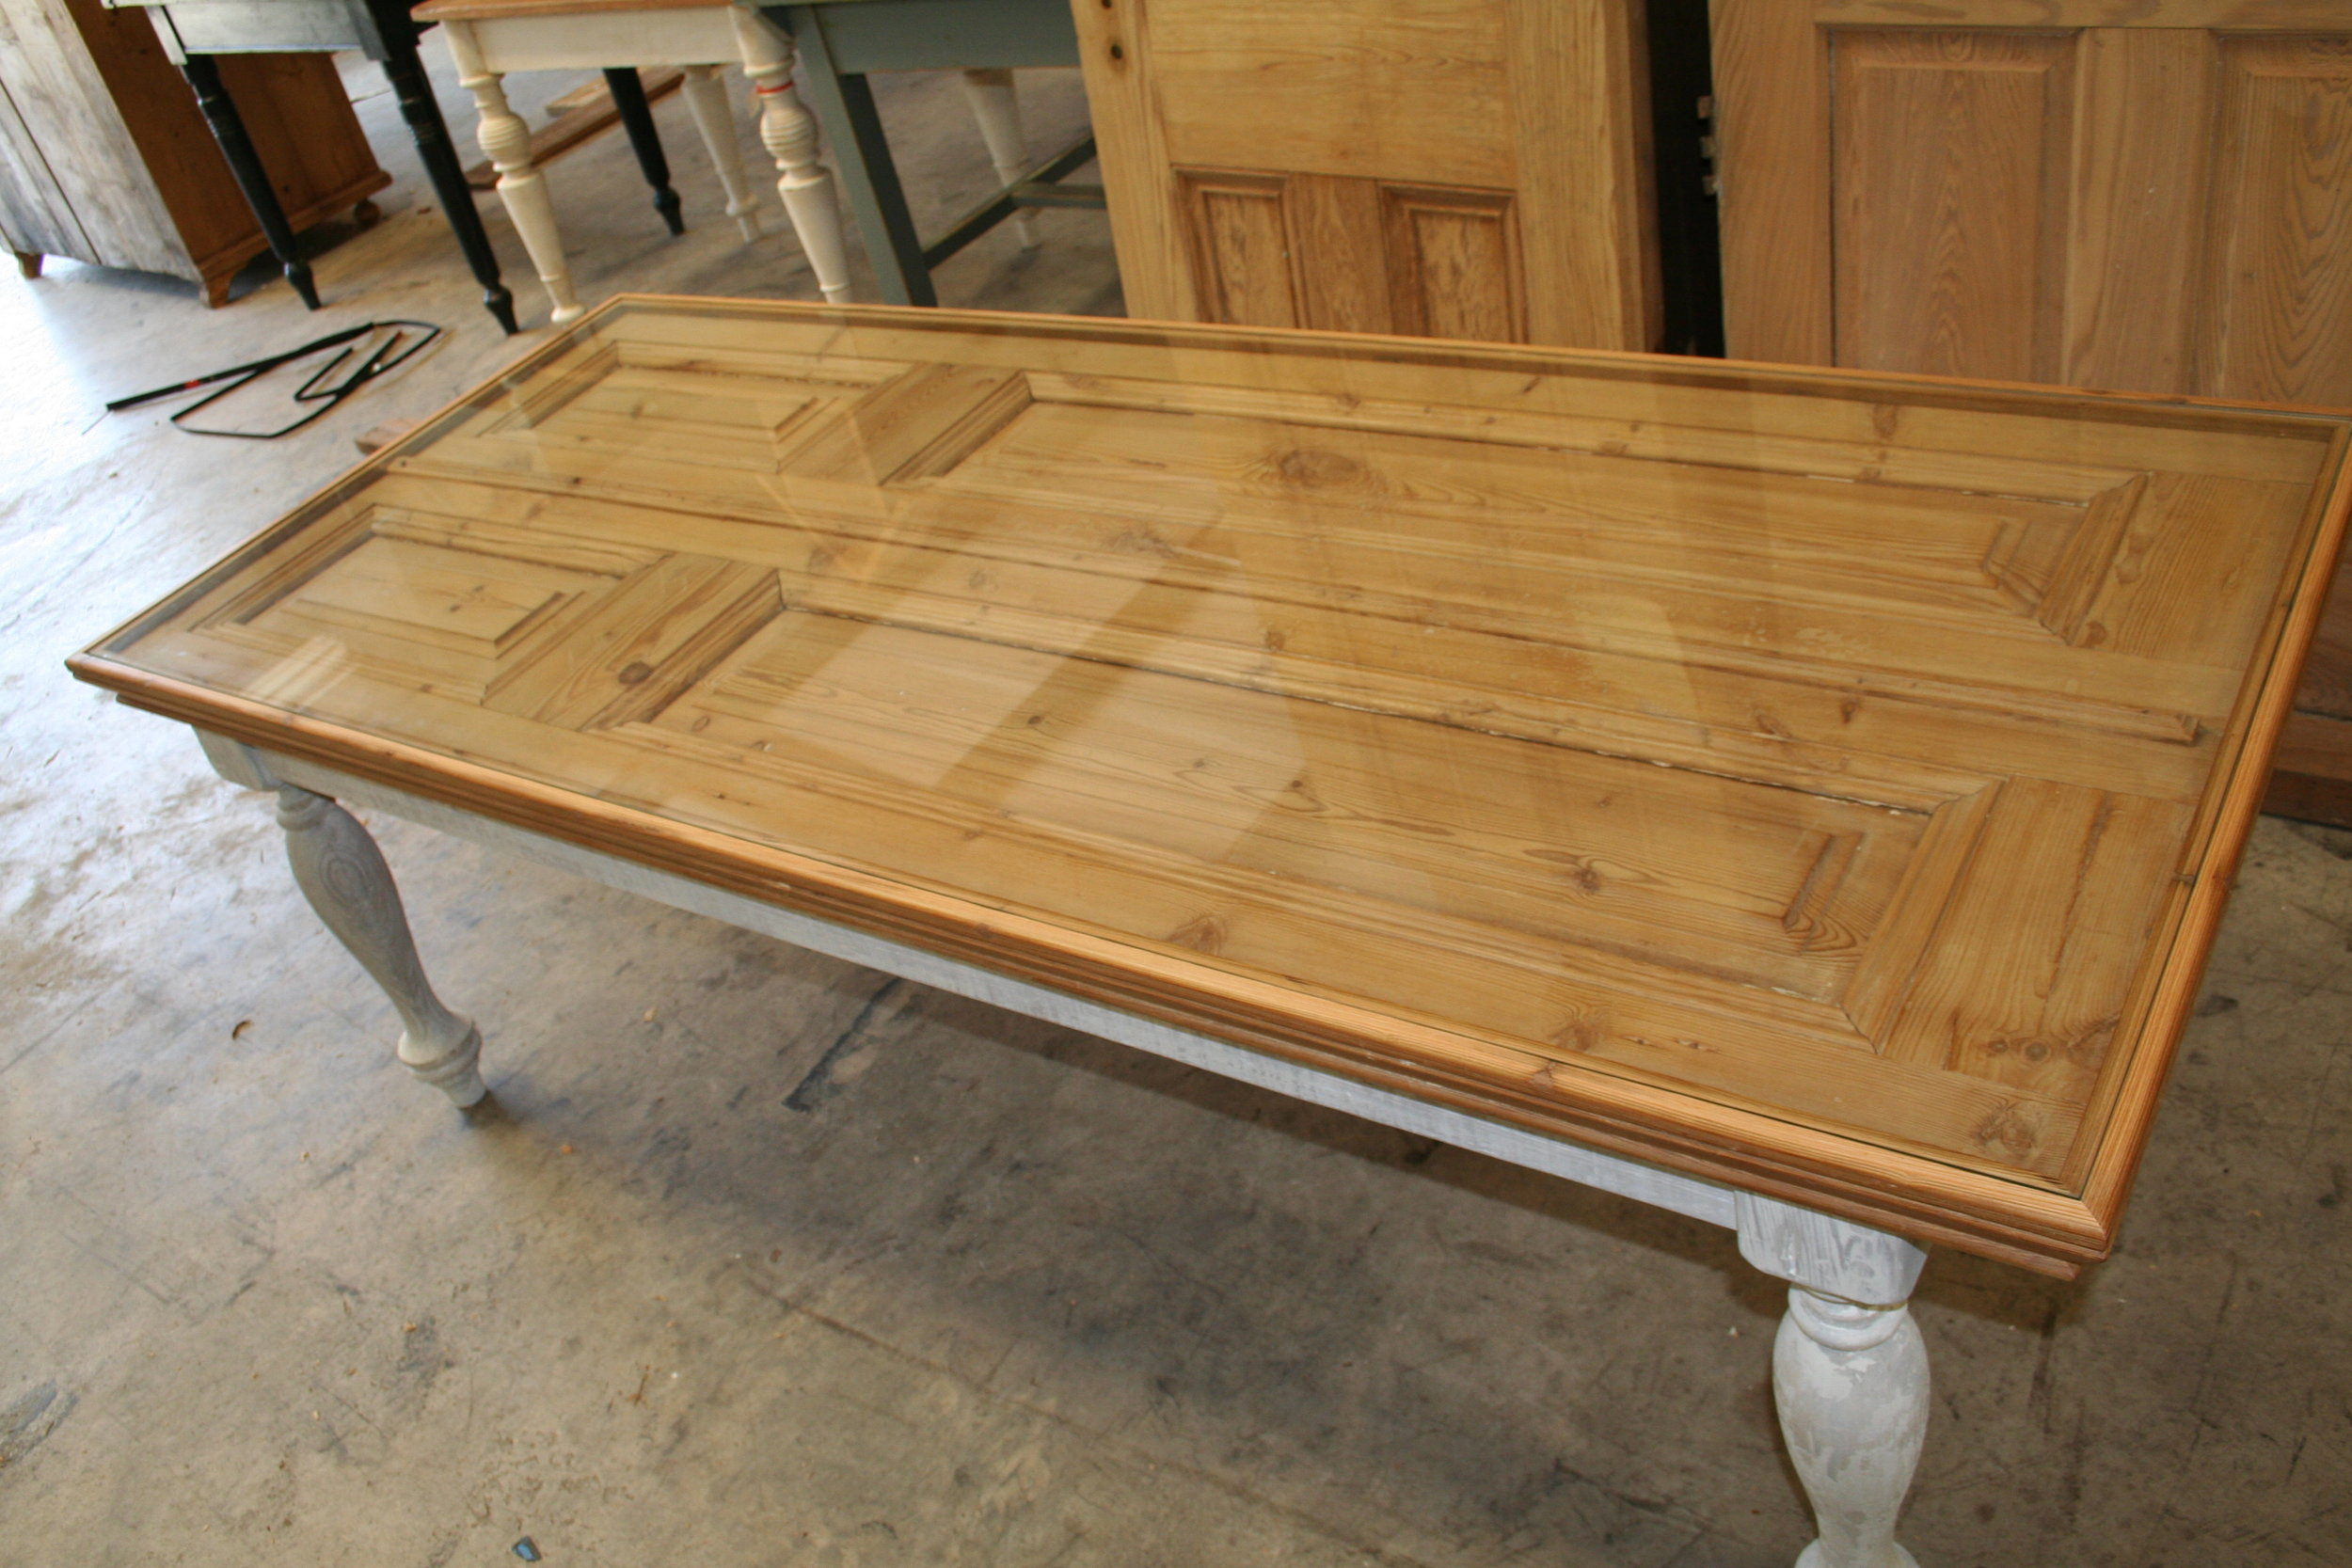 Door table with glass turned legs (2).jpg